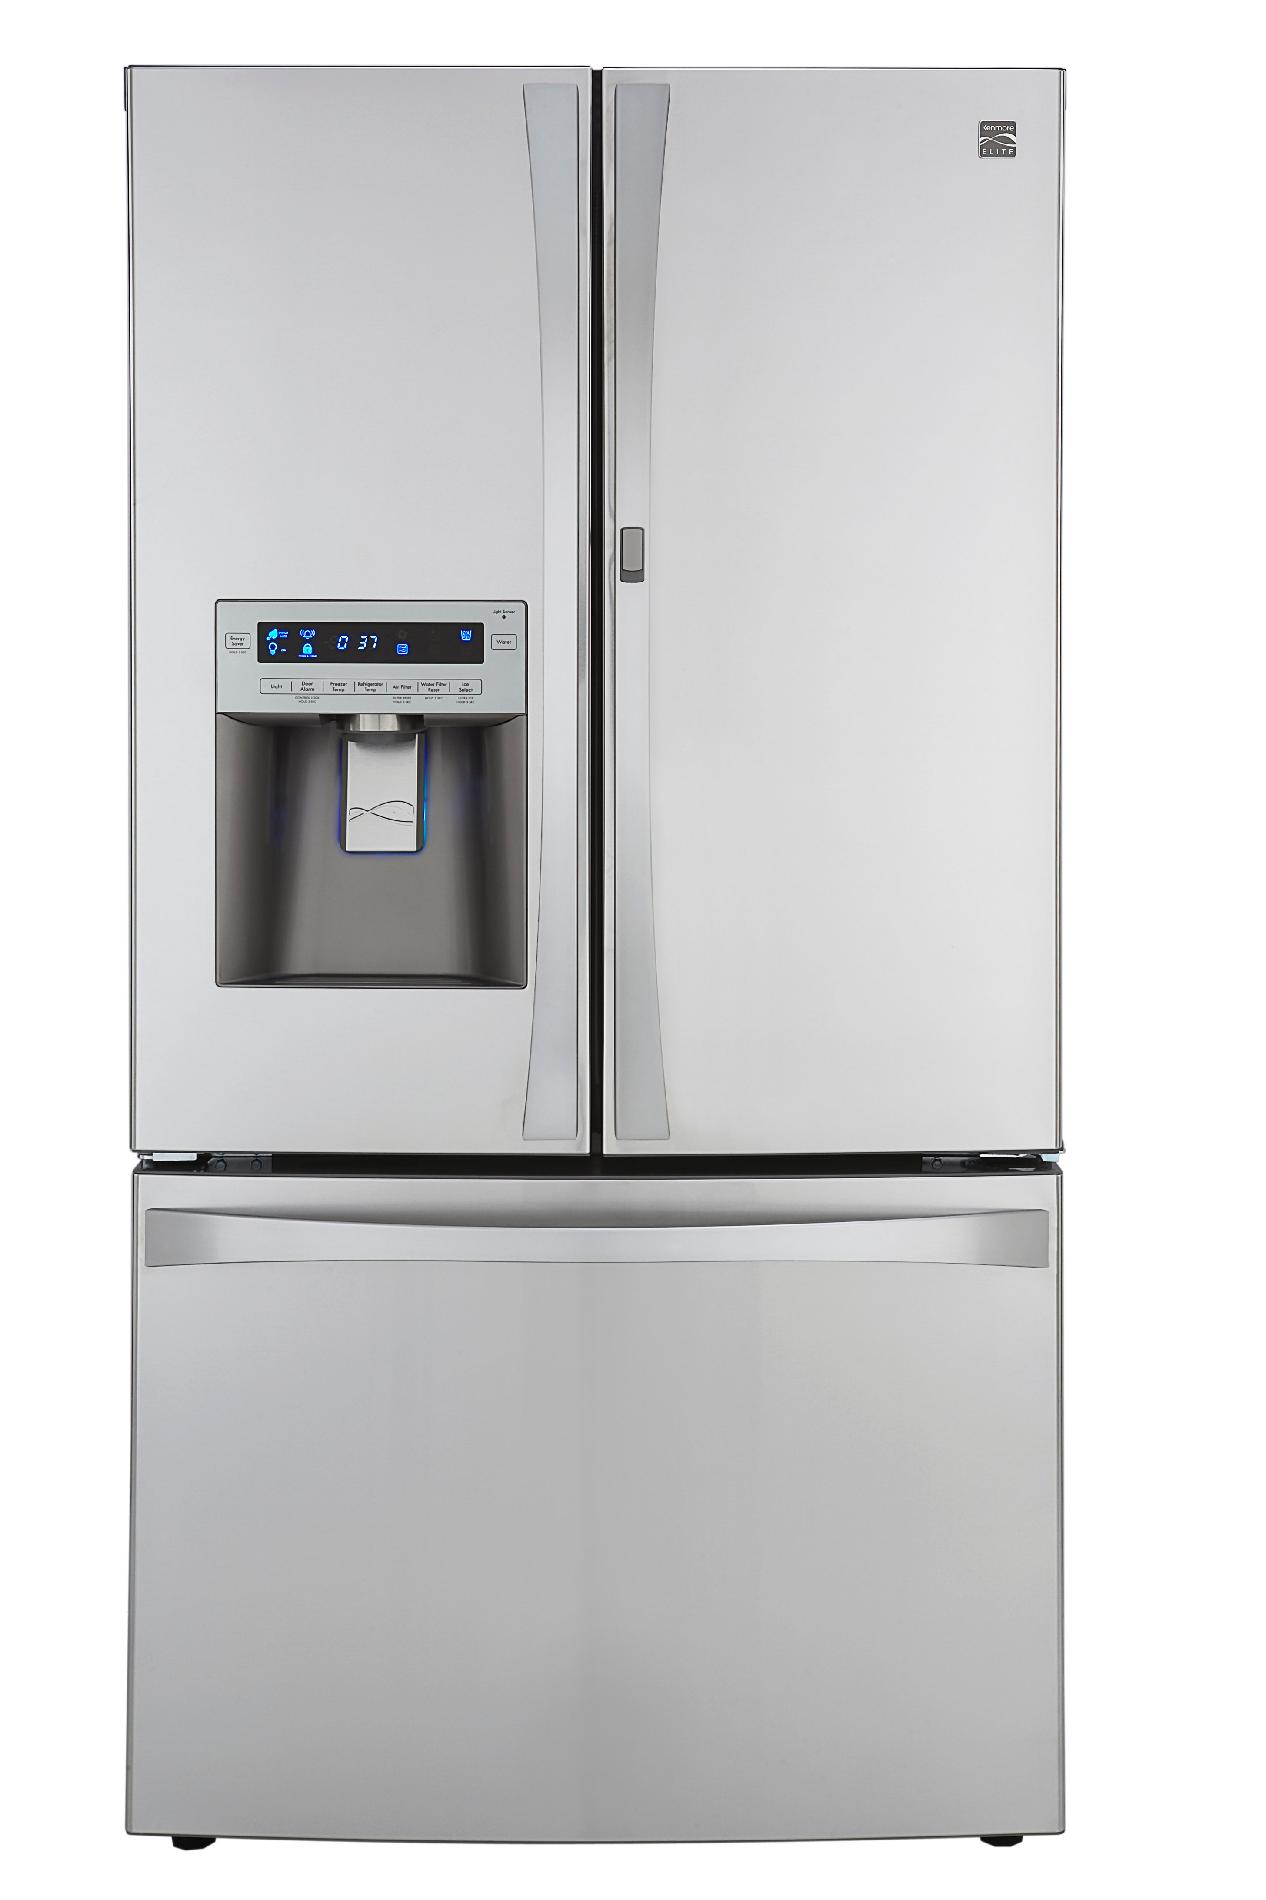 Kenmore Elite 31 cu. ft. Grab-N-Go French Door  Bottom-Freezer Refrigerator - Stainless Steel